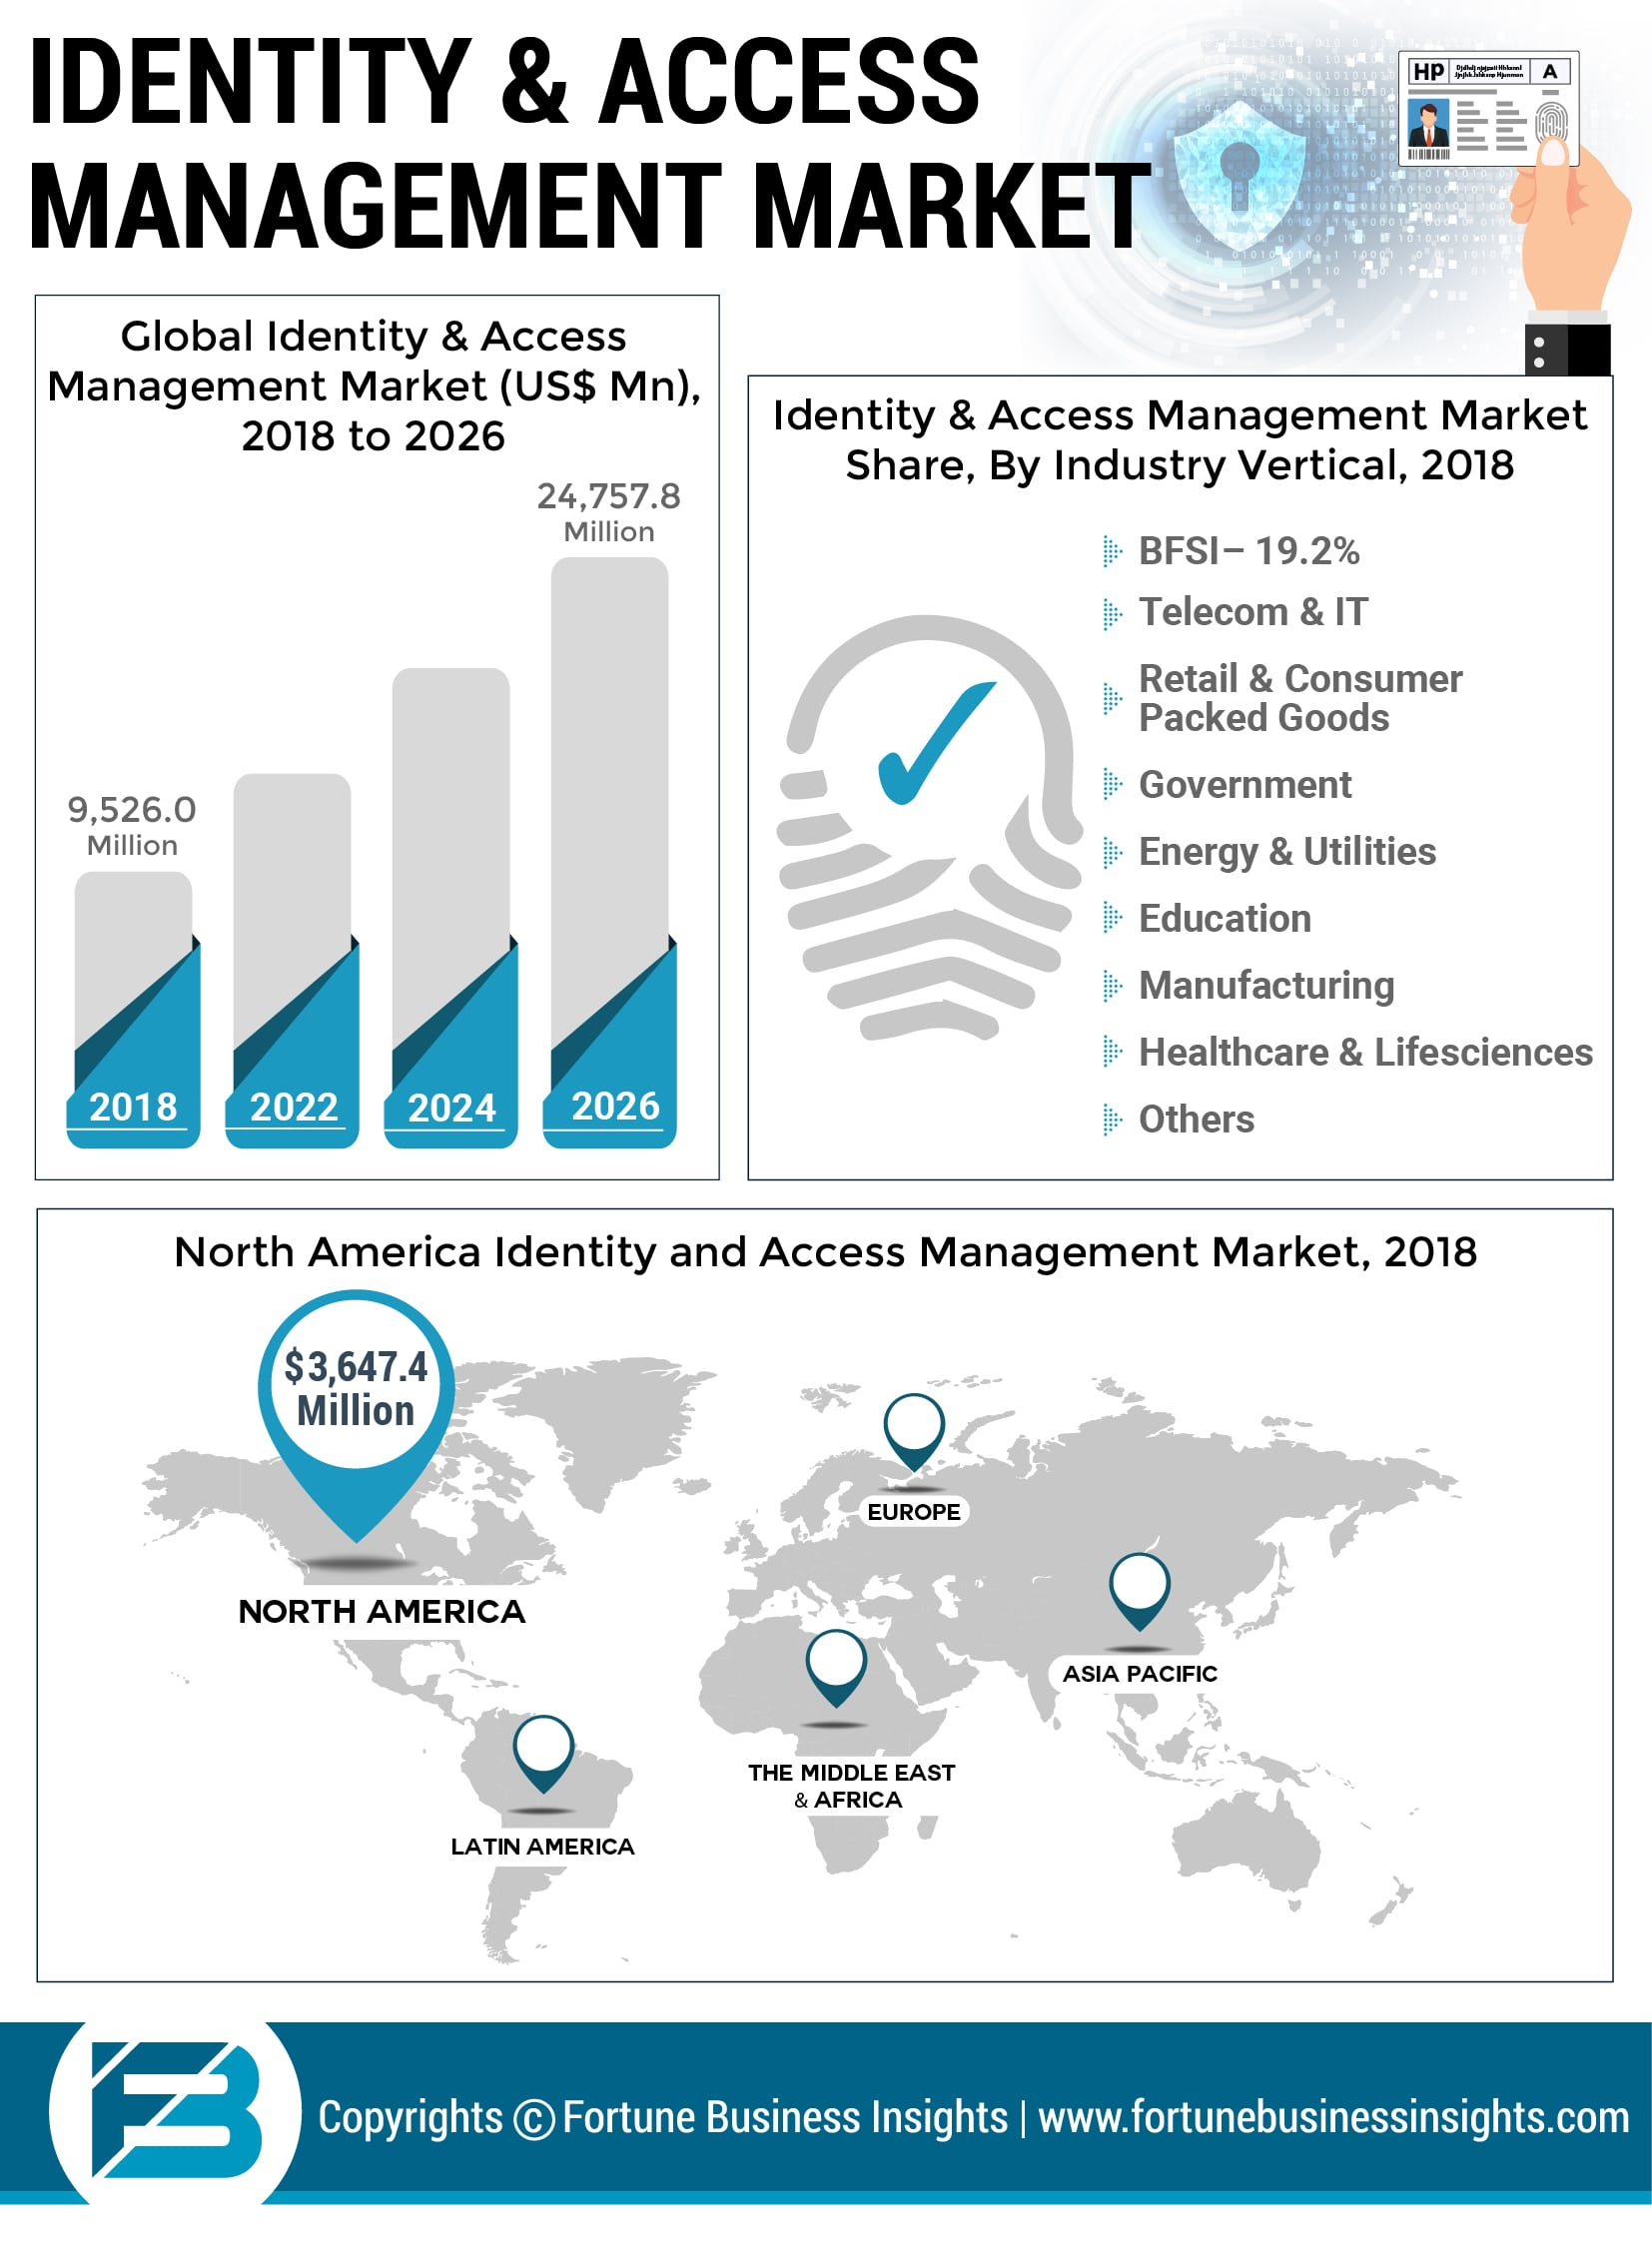 Identity and Access Management Market